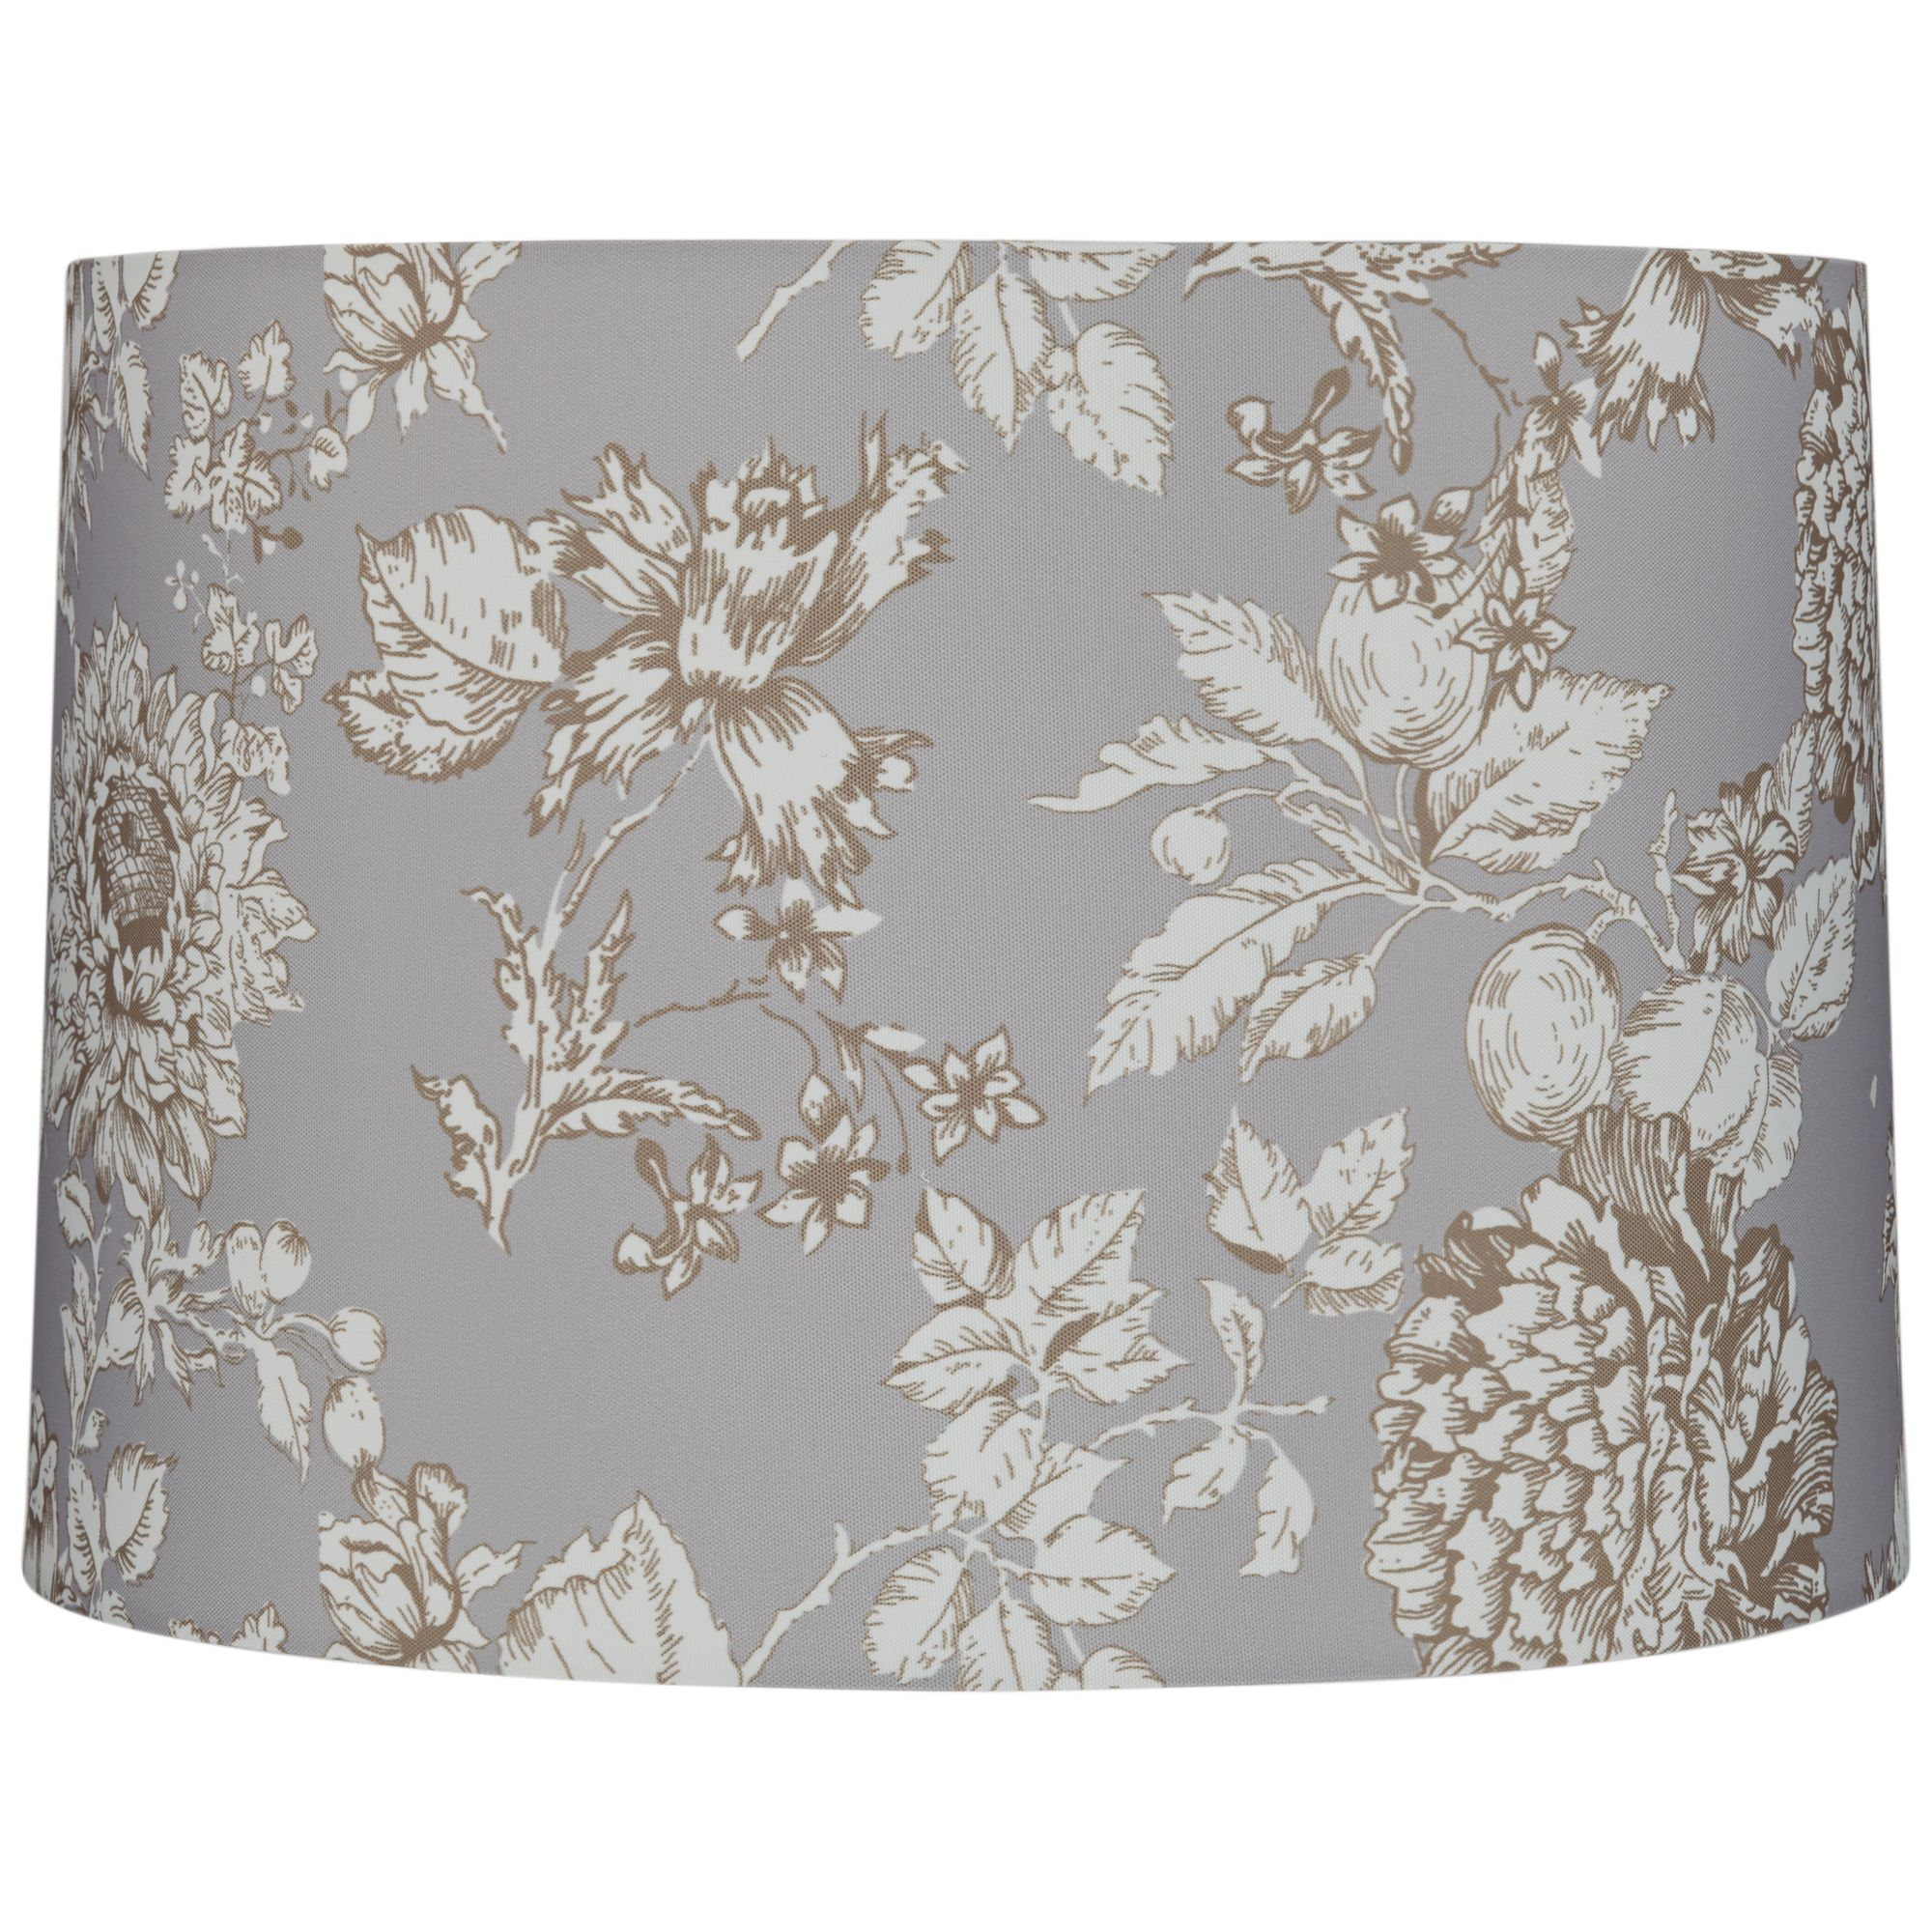 Springcrest Brown And Creme Floral Drum Lamp Shade 15X16x11 (Spider)